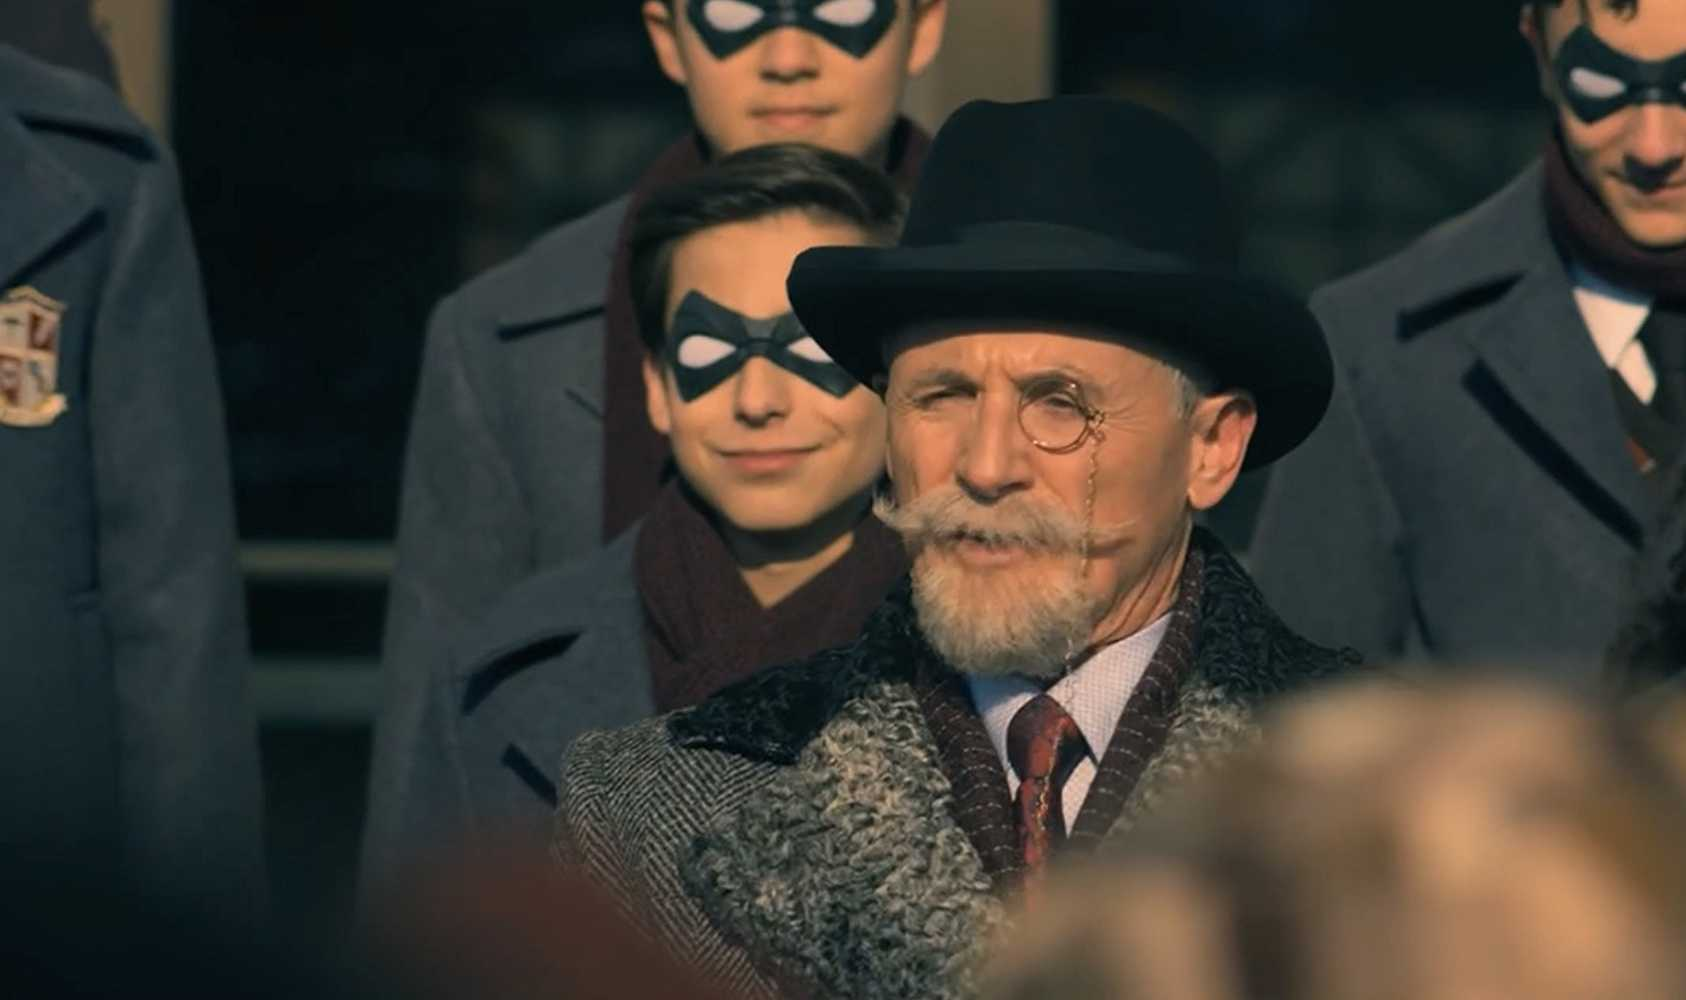 Colm Feore as Sir Reginald Hargreeves in 'The Umbrella Academy'. (Source: IMDB)